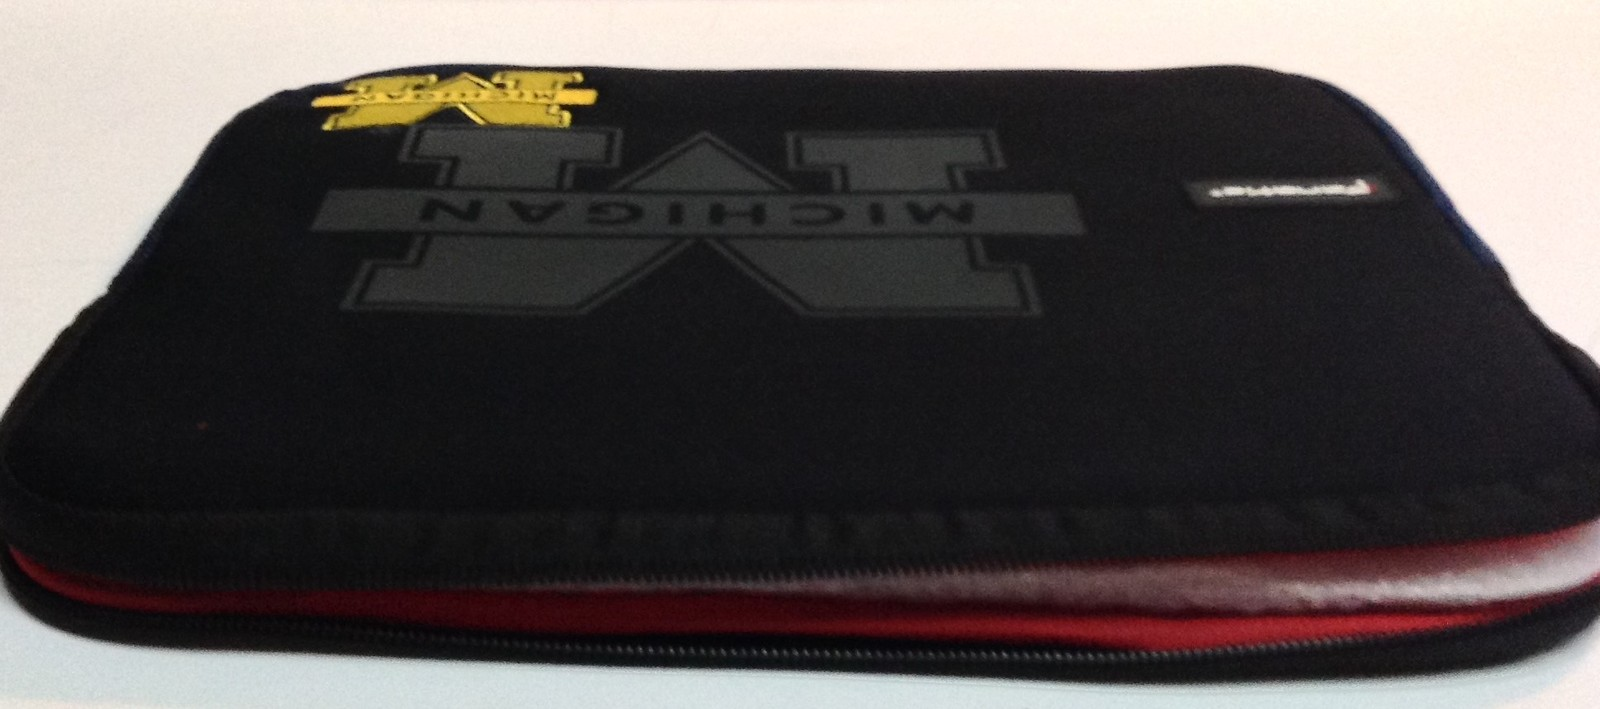 Michigan University Tablet Ipad Laptop Protection Case by Fanatic NWT